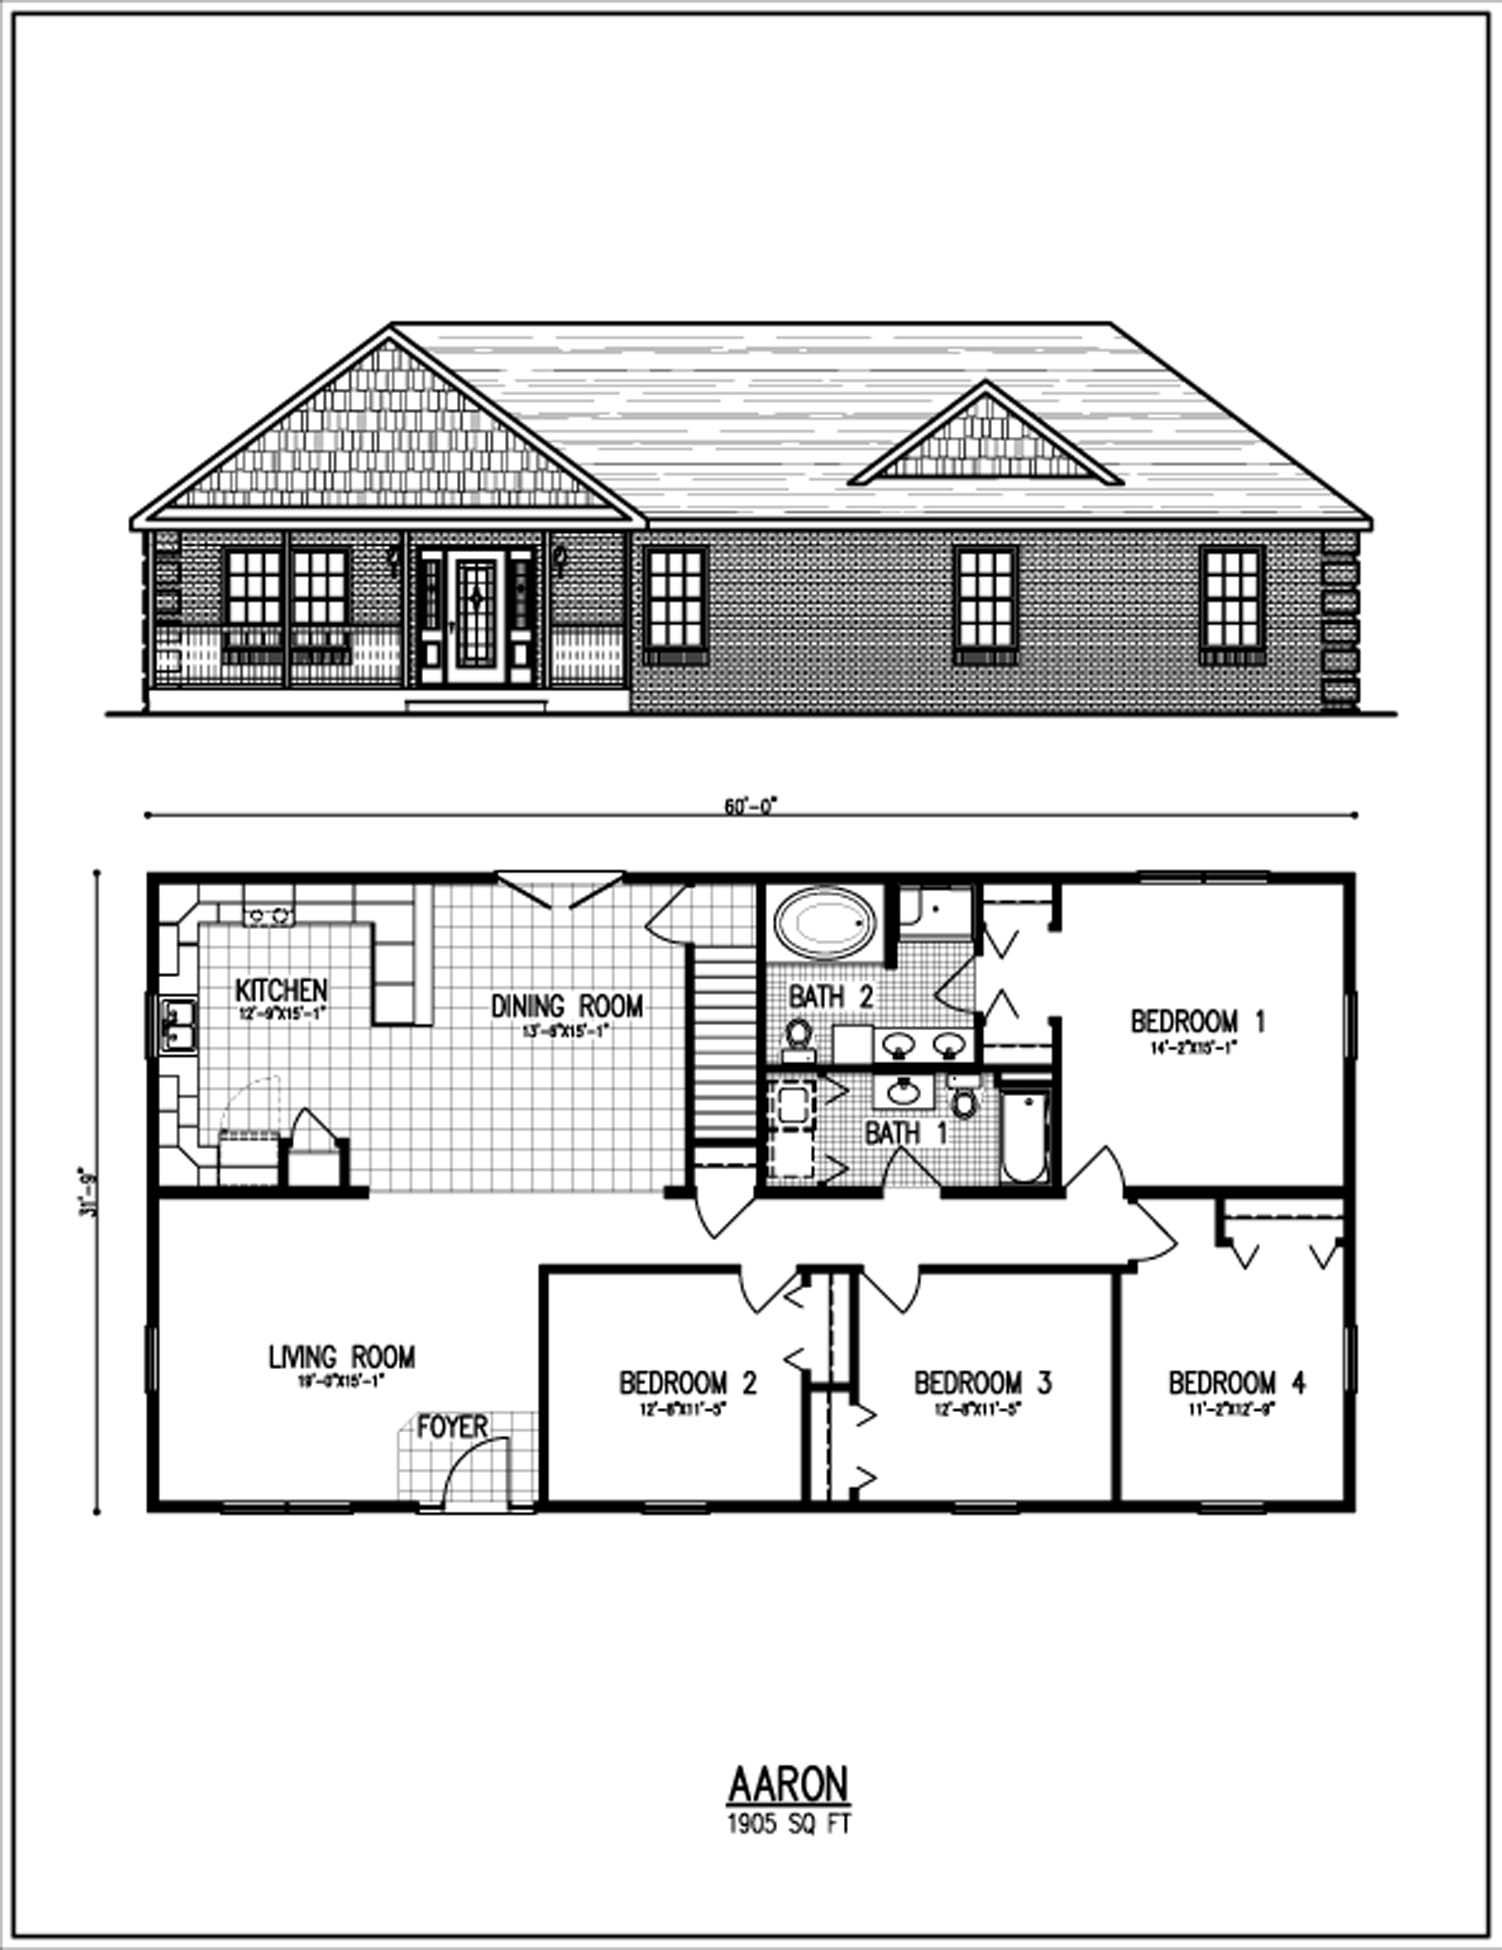 All american homes floorplan center staffordcape Building layout plan free